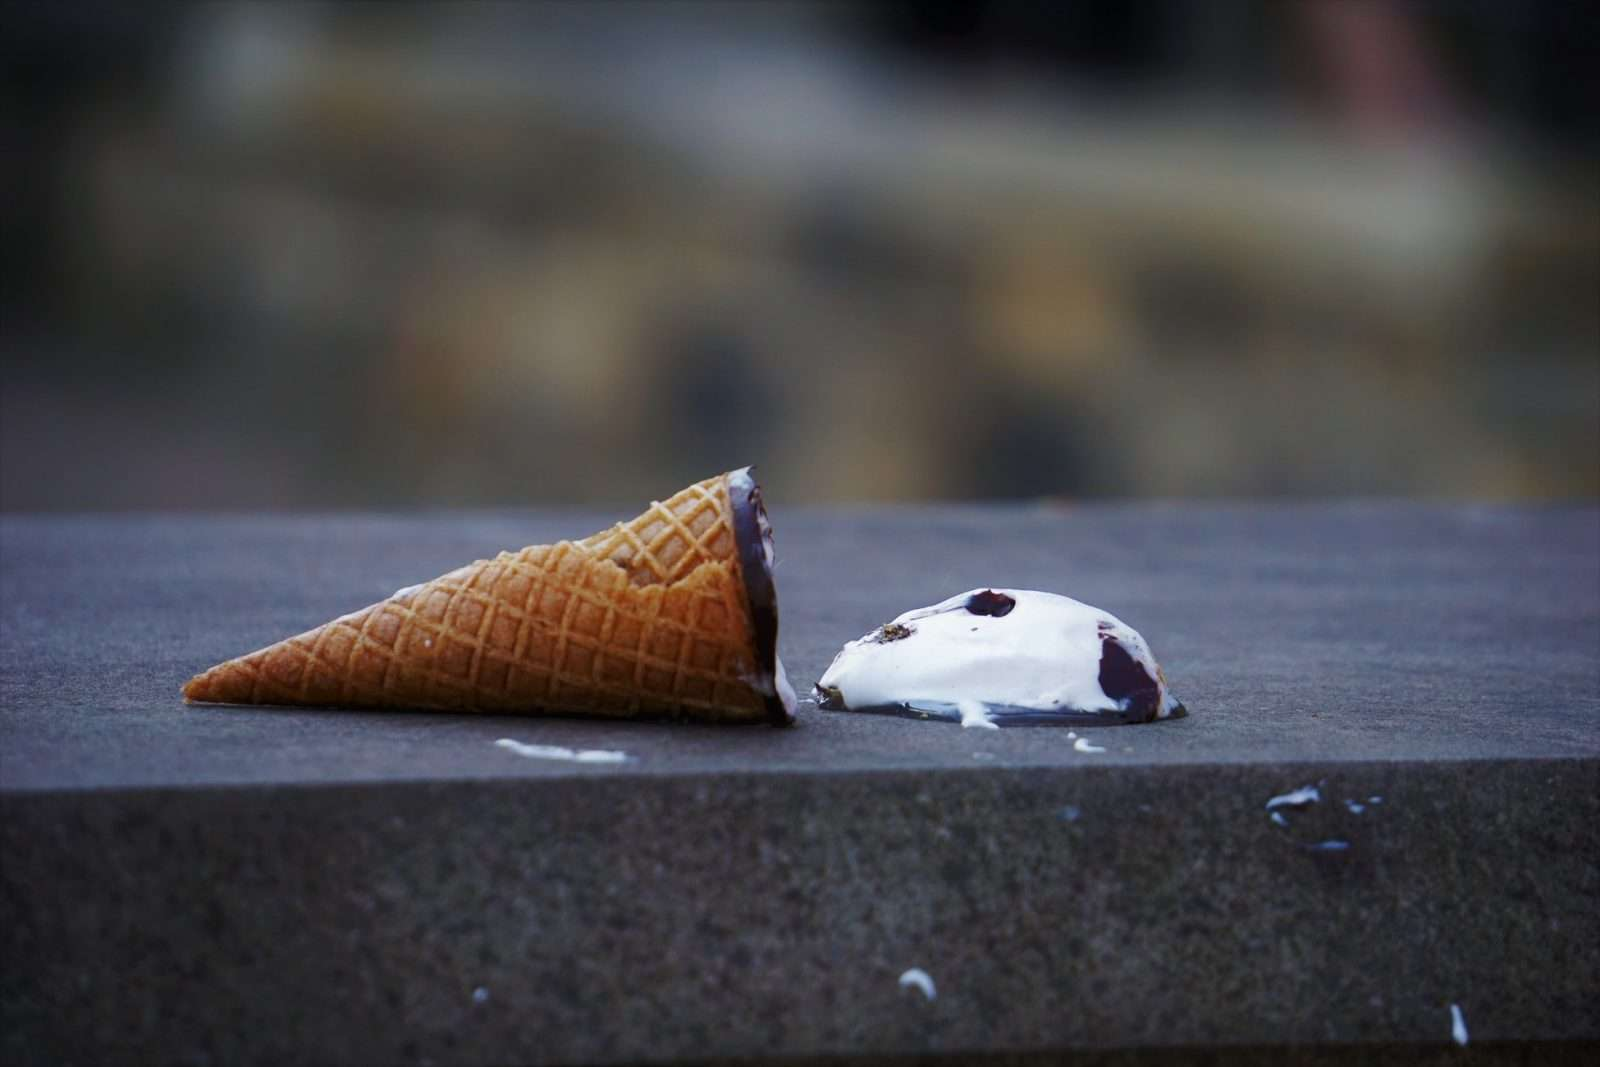 Losing an ice cream cone by dropping it.